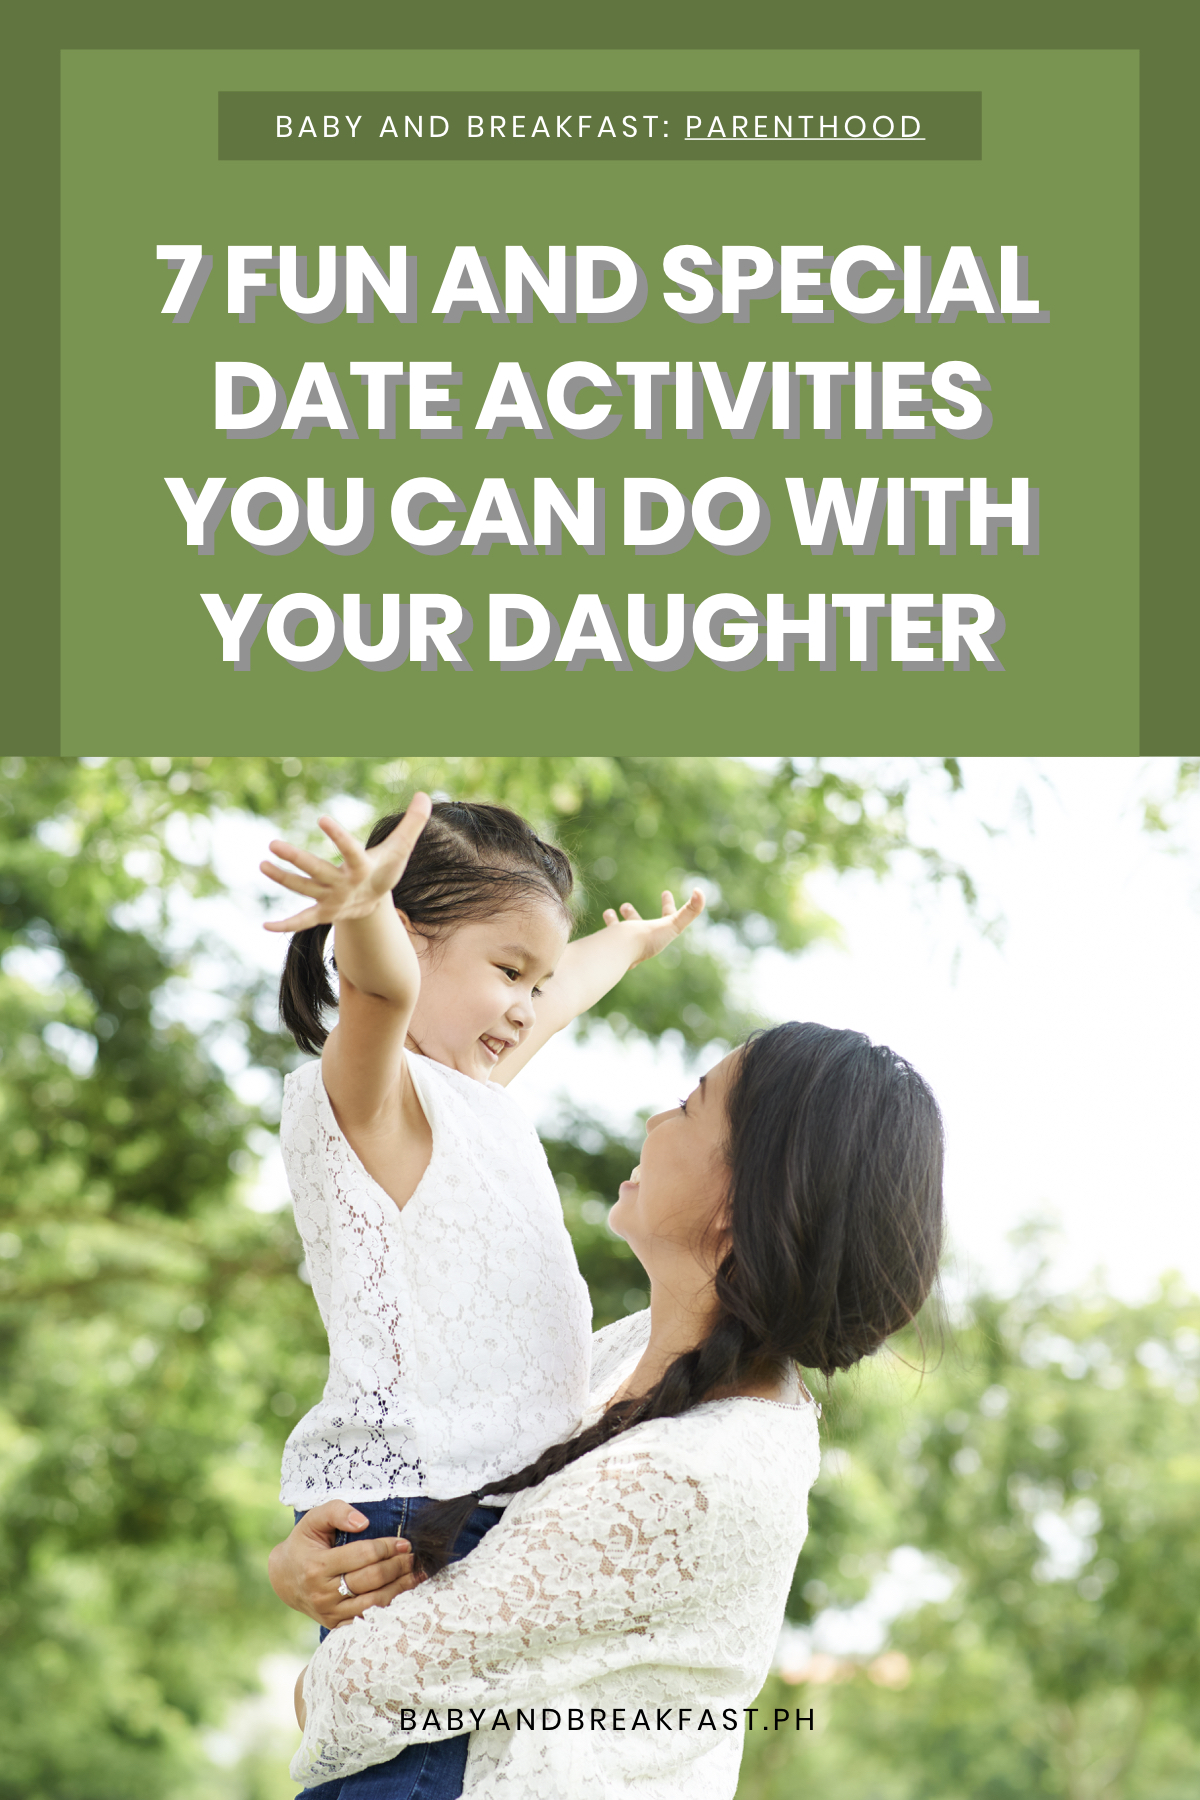 Baby and Breakfast: Parenthood 7 Fun and Special Date Activities You Can Do With Your Daughter